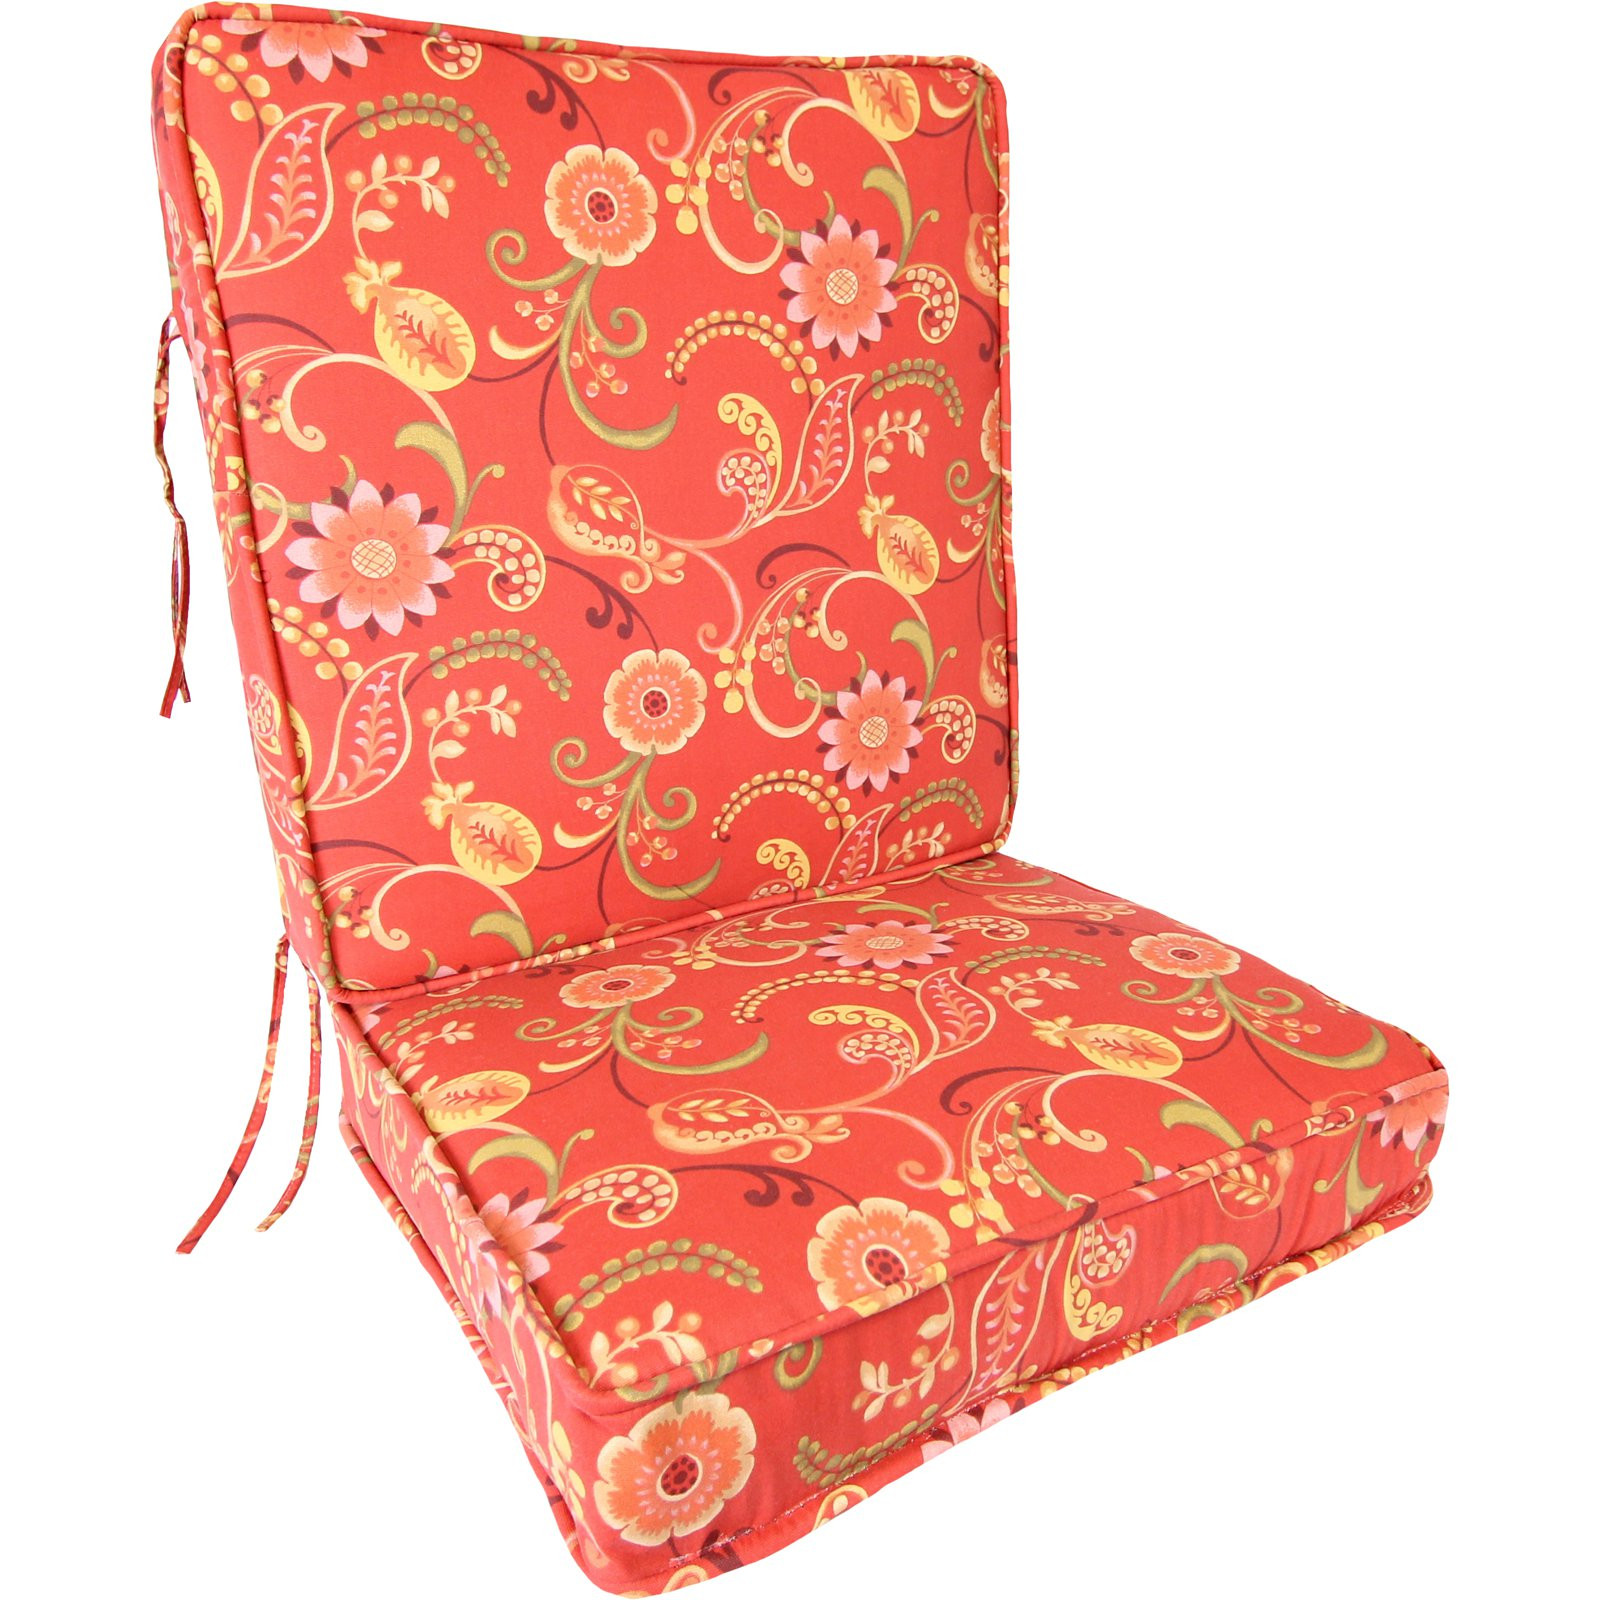 Best ideas about Walmart Patio Cushions Clearance . Save or Pin Outdoor Seat Cushions Clearance In Unusual Minimalist Now.